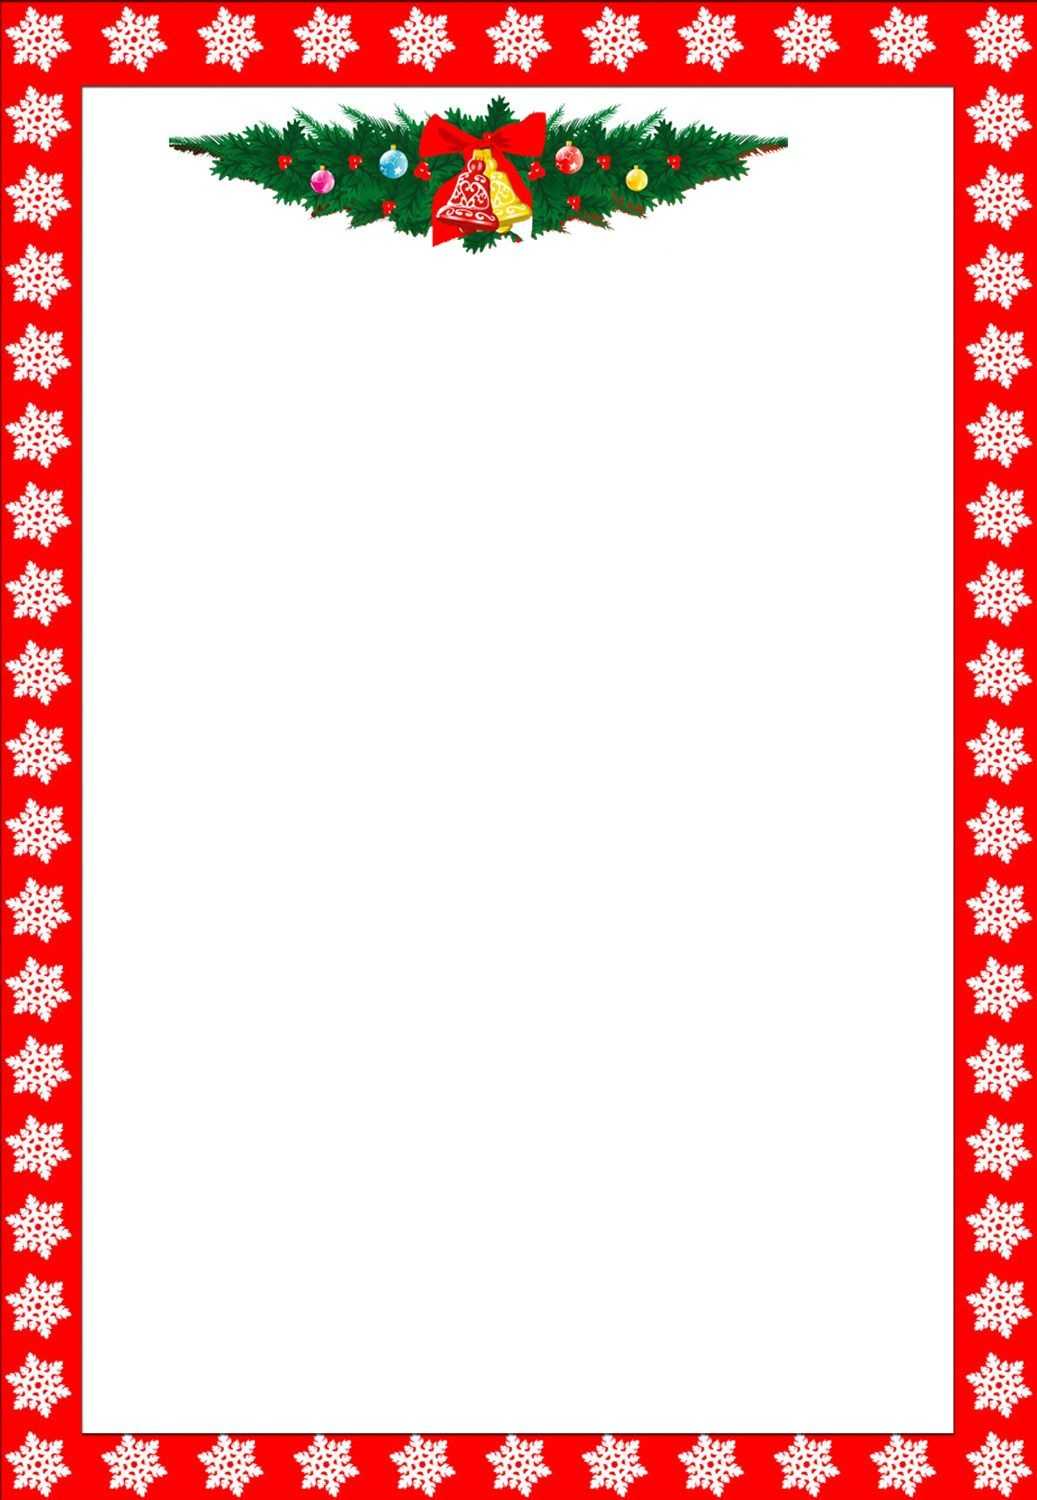 Christmas Clip Art Borders | Free Christmas Borders 020511 - Free Printable Christmas Paper With Borders